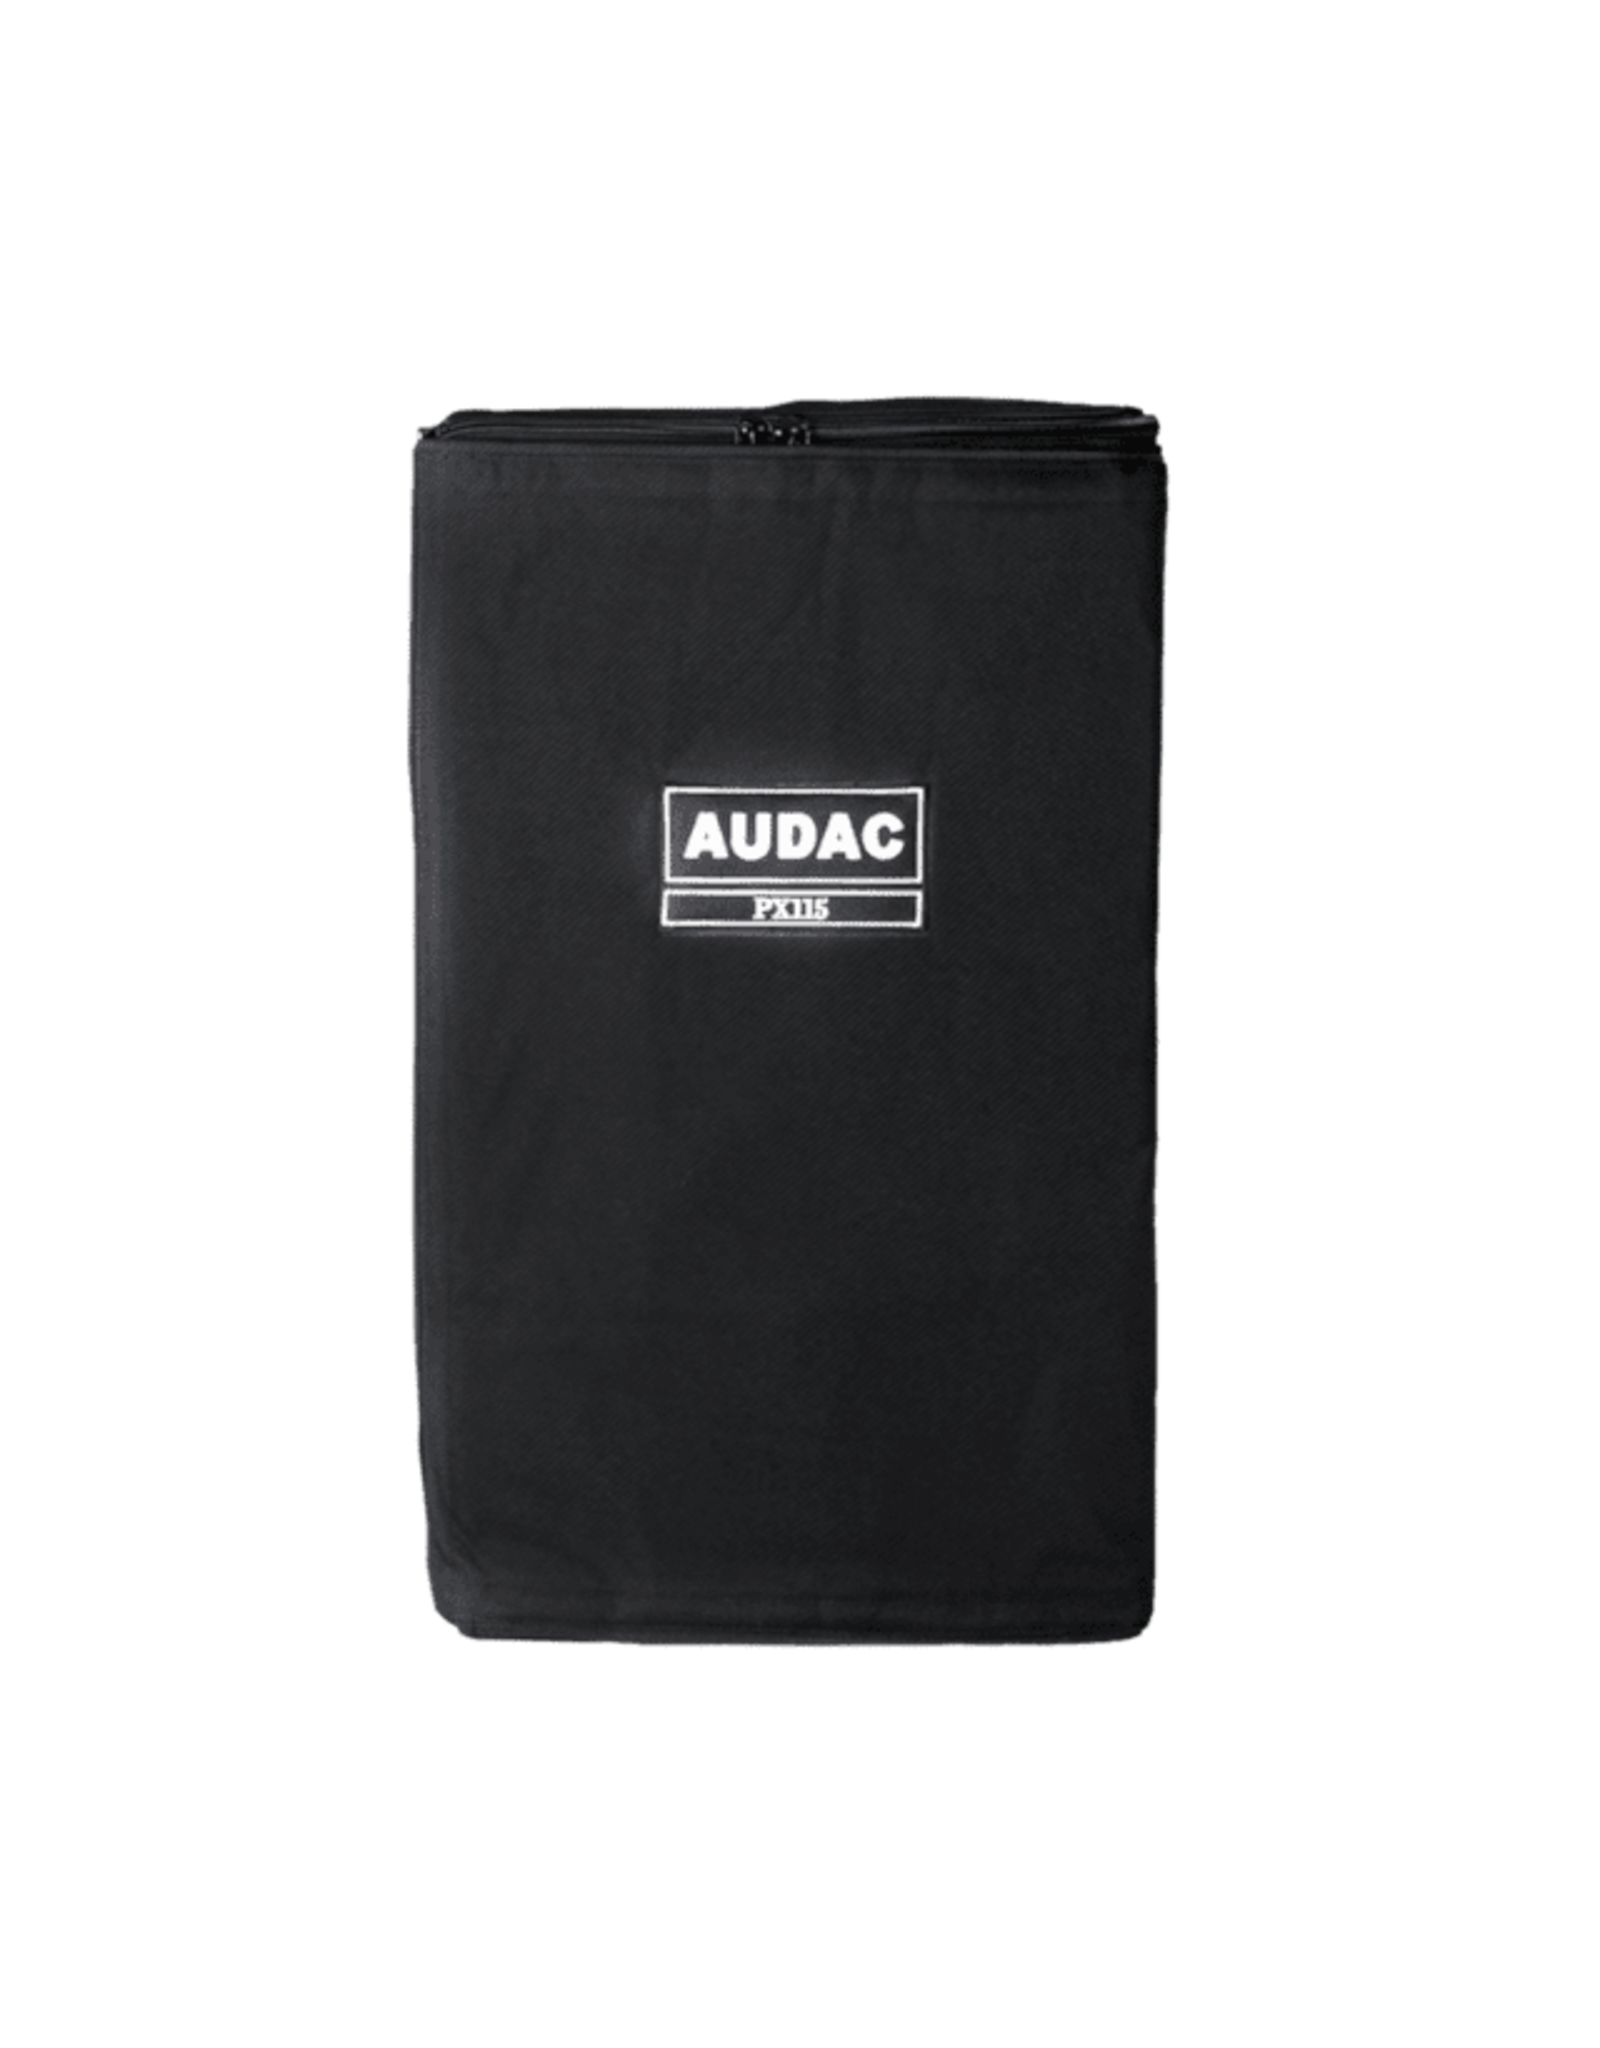 Audac Cover bag for PX115